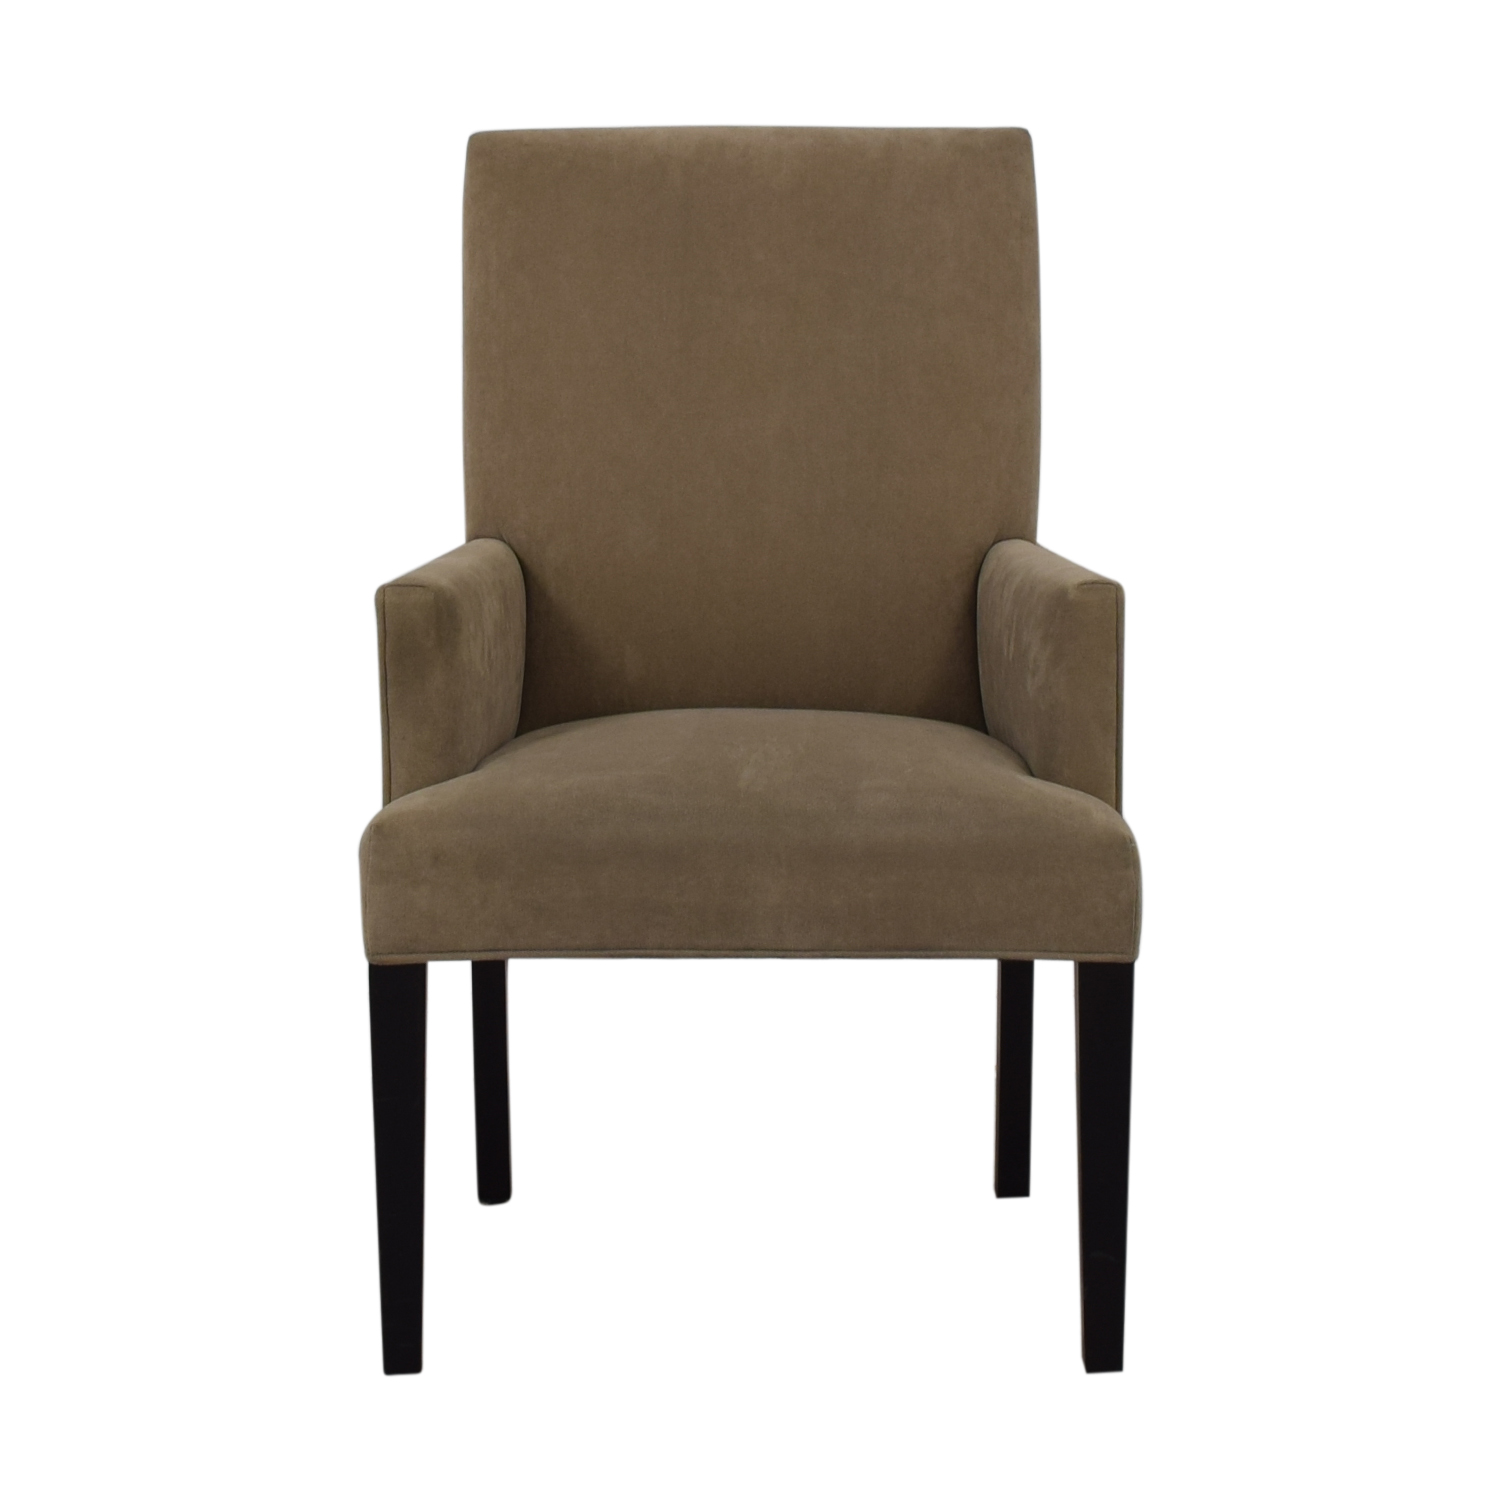 Crate & Barrel Crate & Barrel Tan Dining Chair for sale